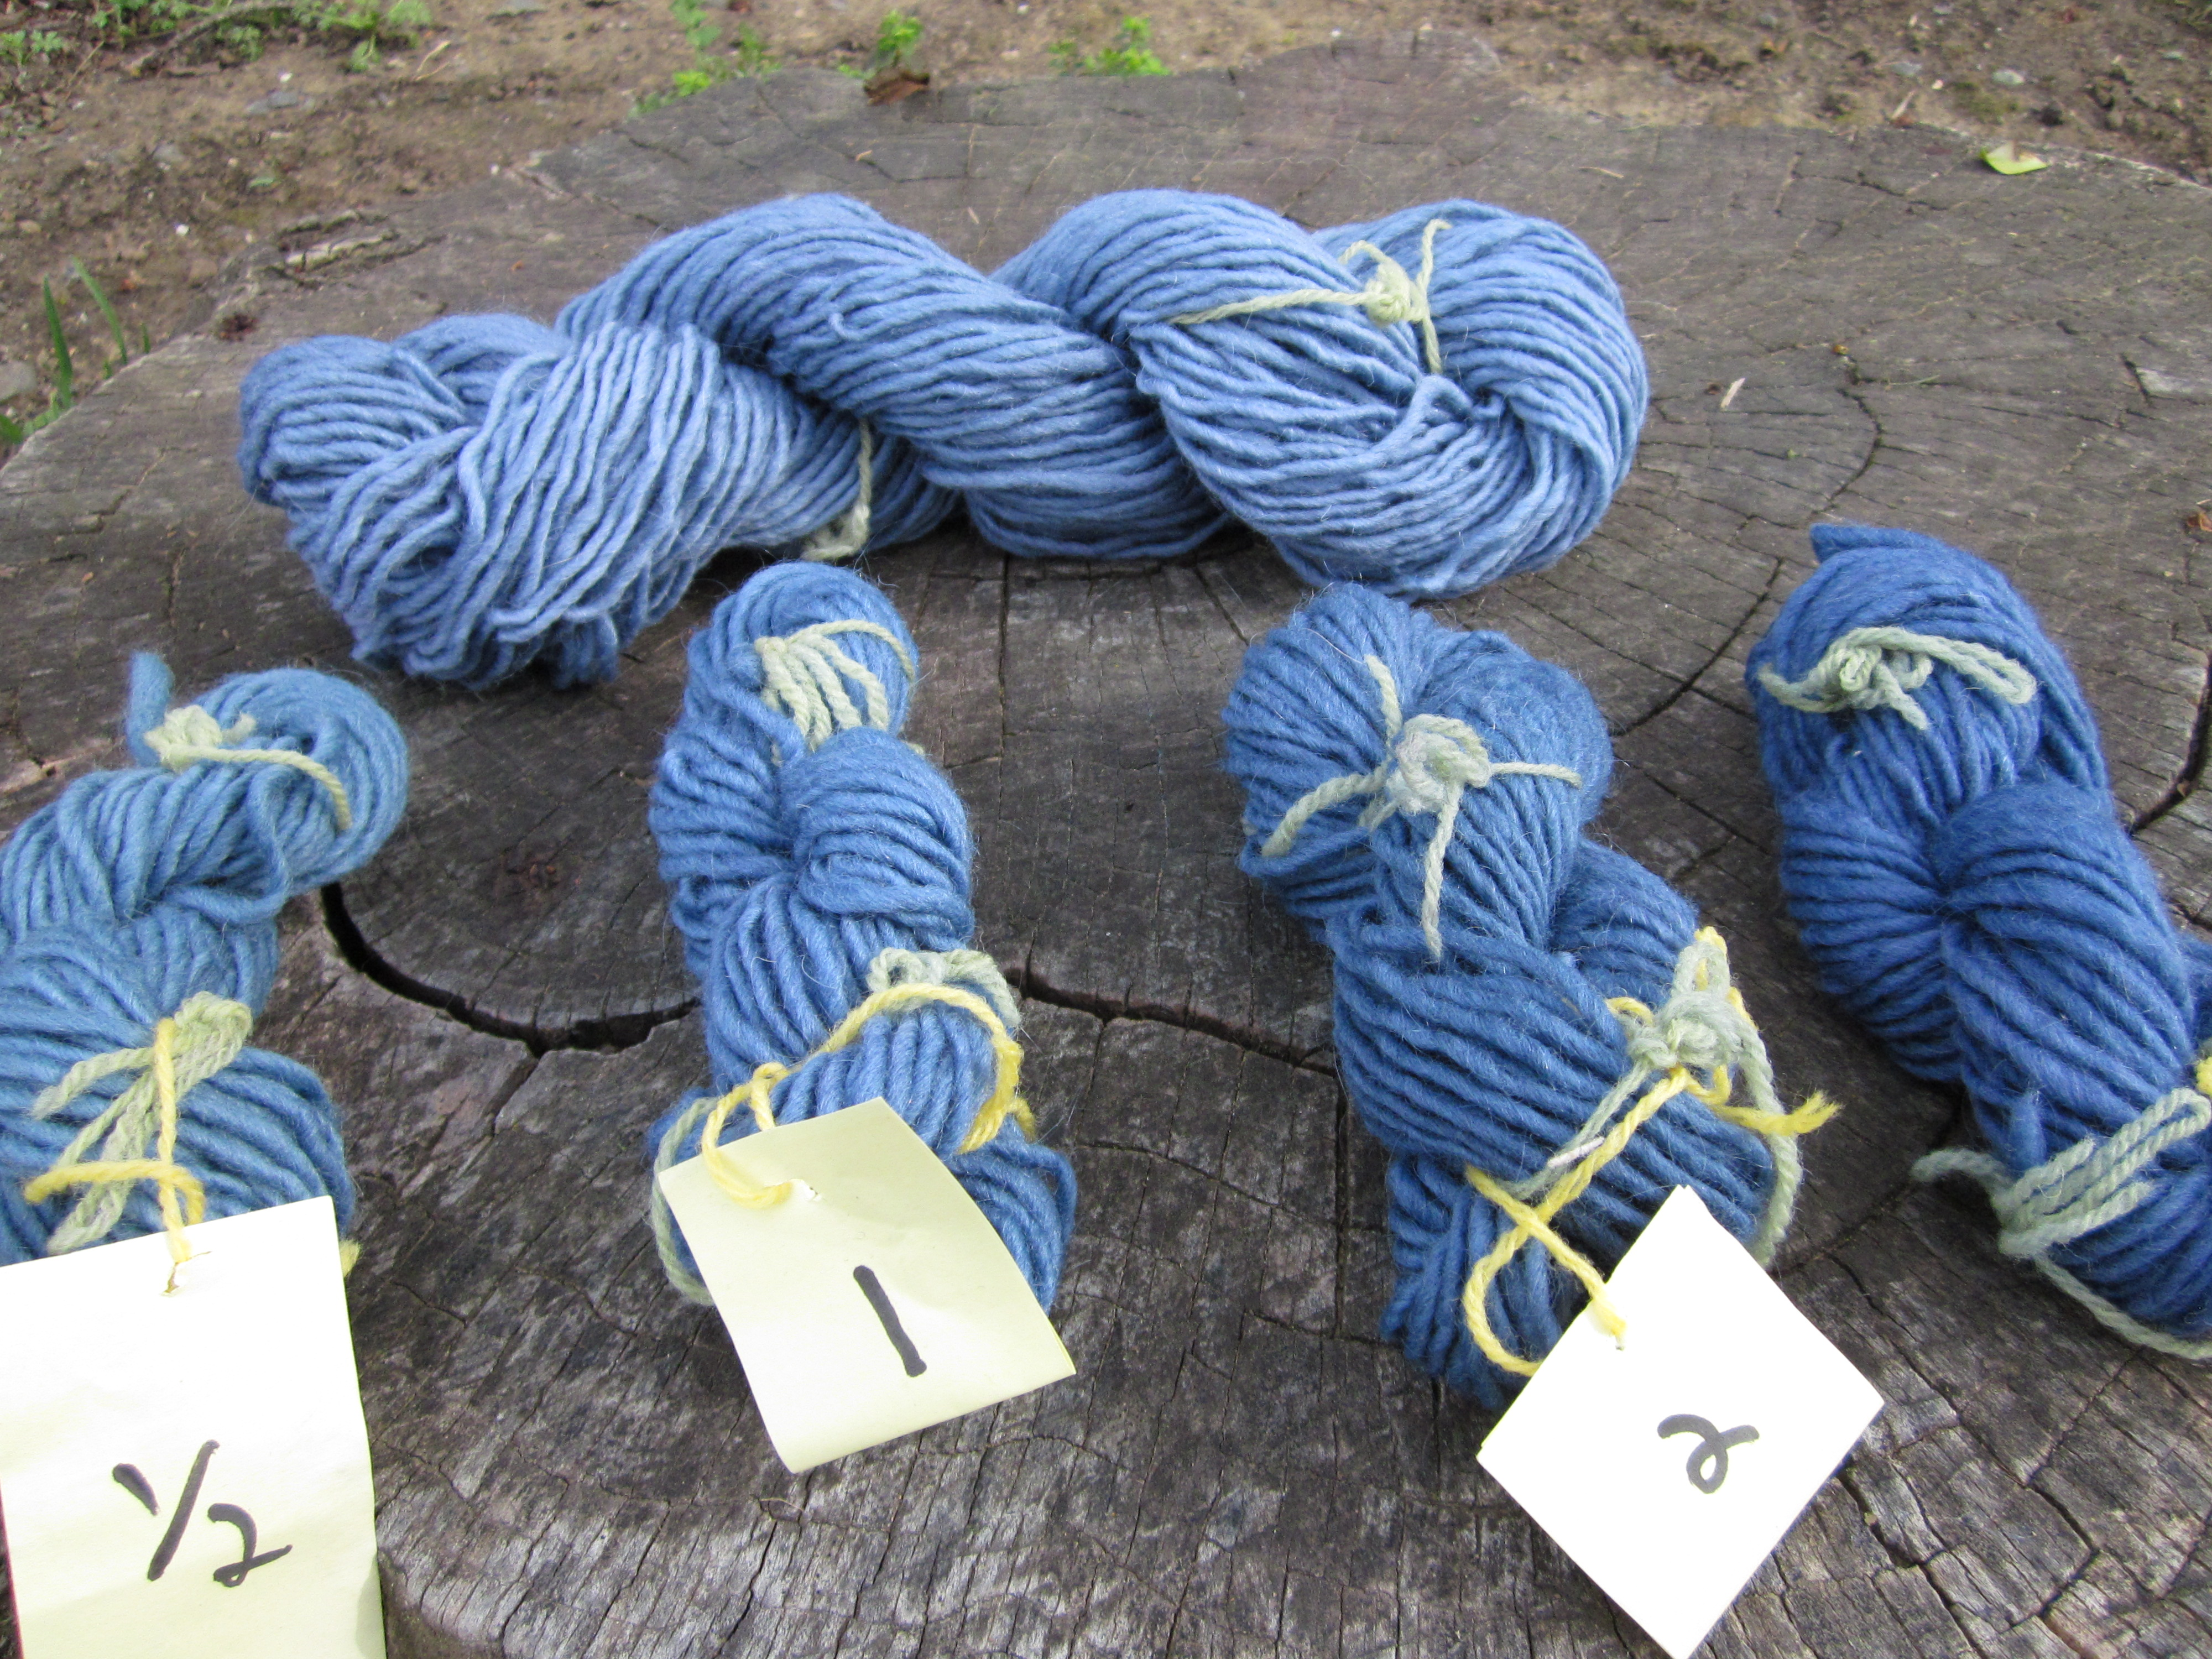 Natural dye tutorial: blue yarn from black beans!